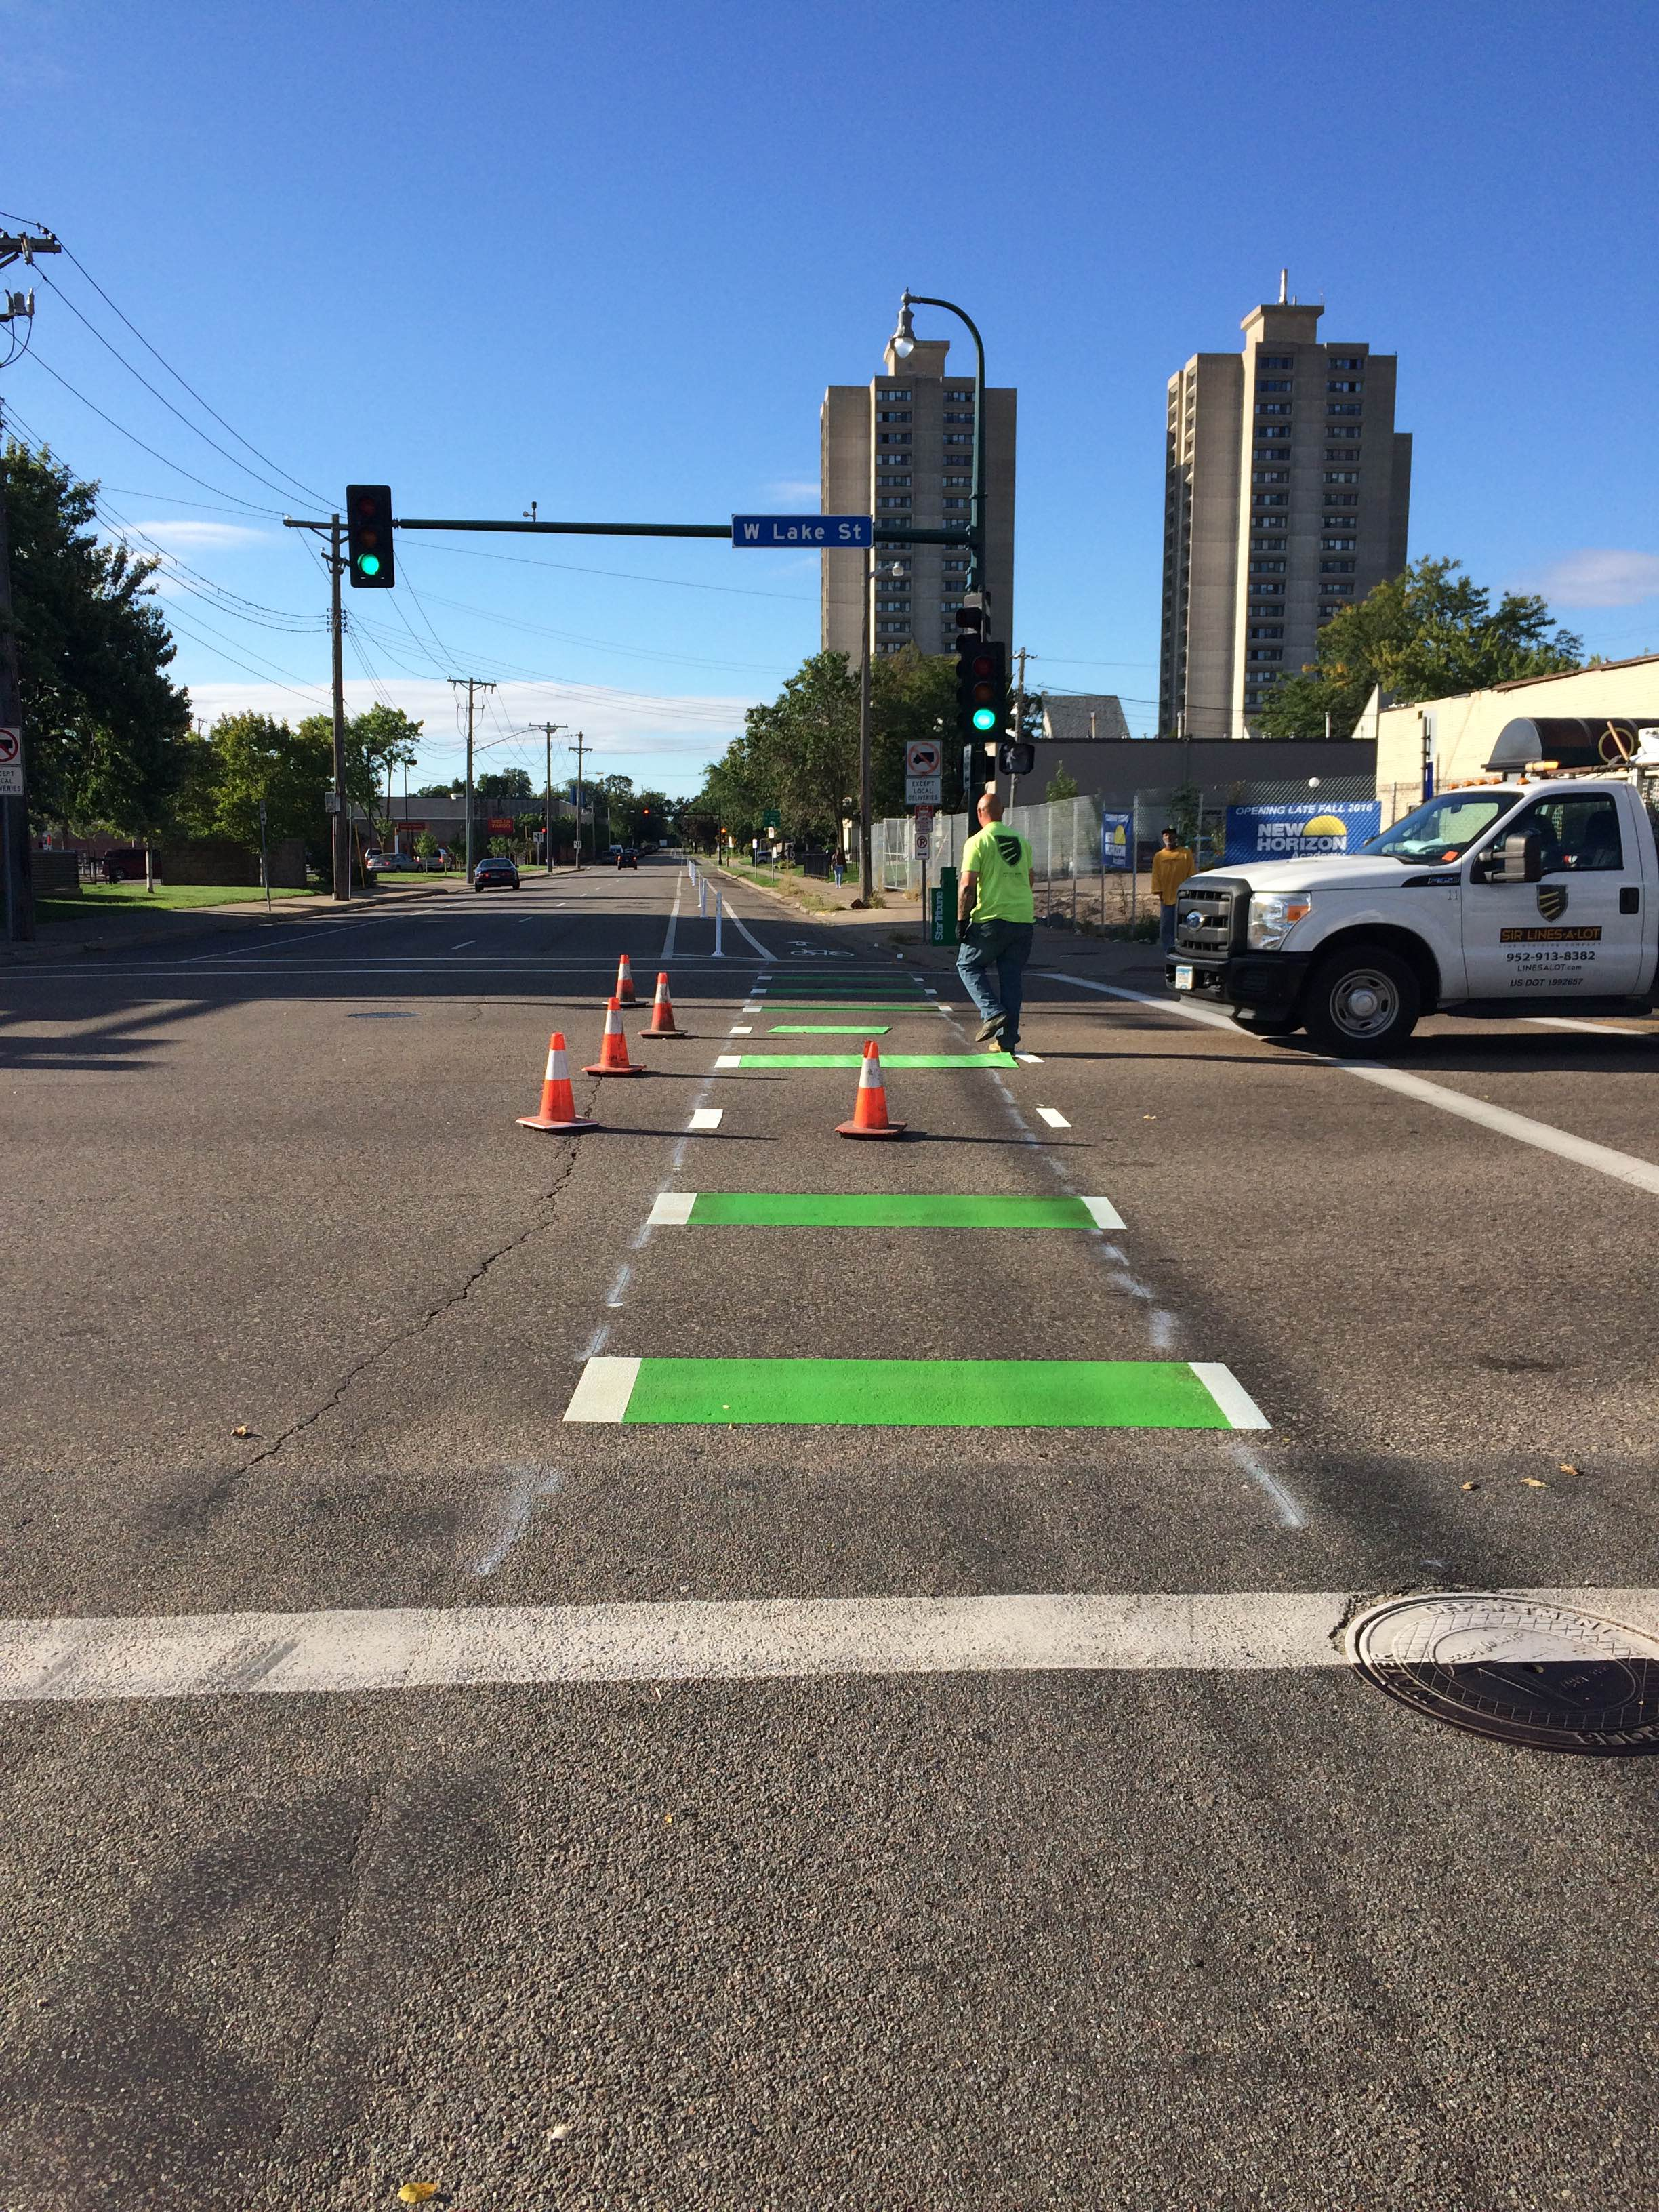 Blaisdell_Protected_Bike_Lane_Green_Intersection.JPG